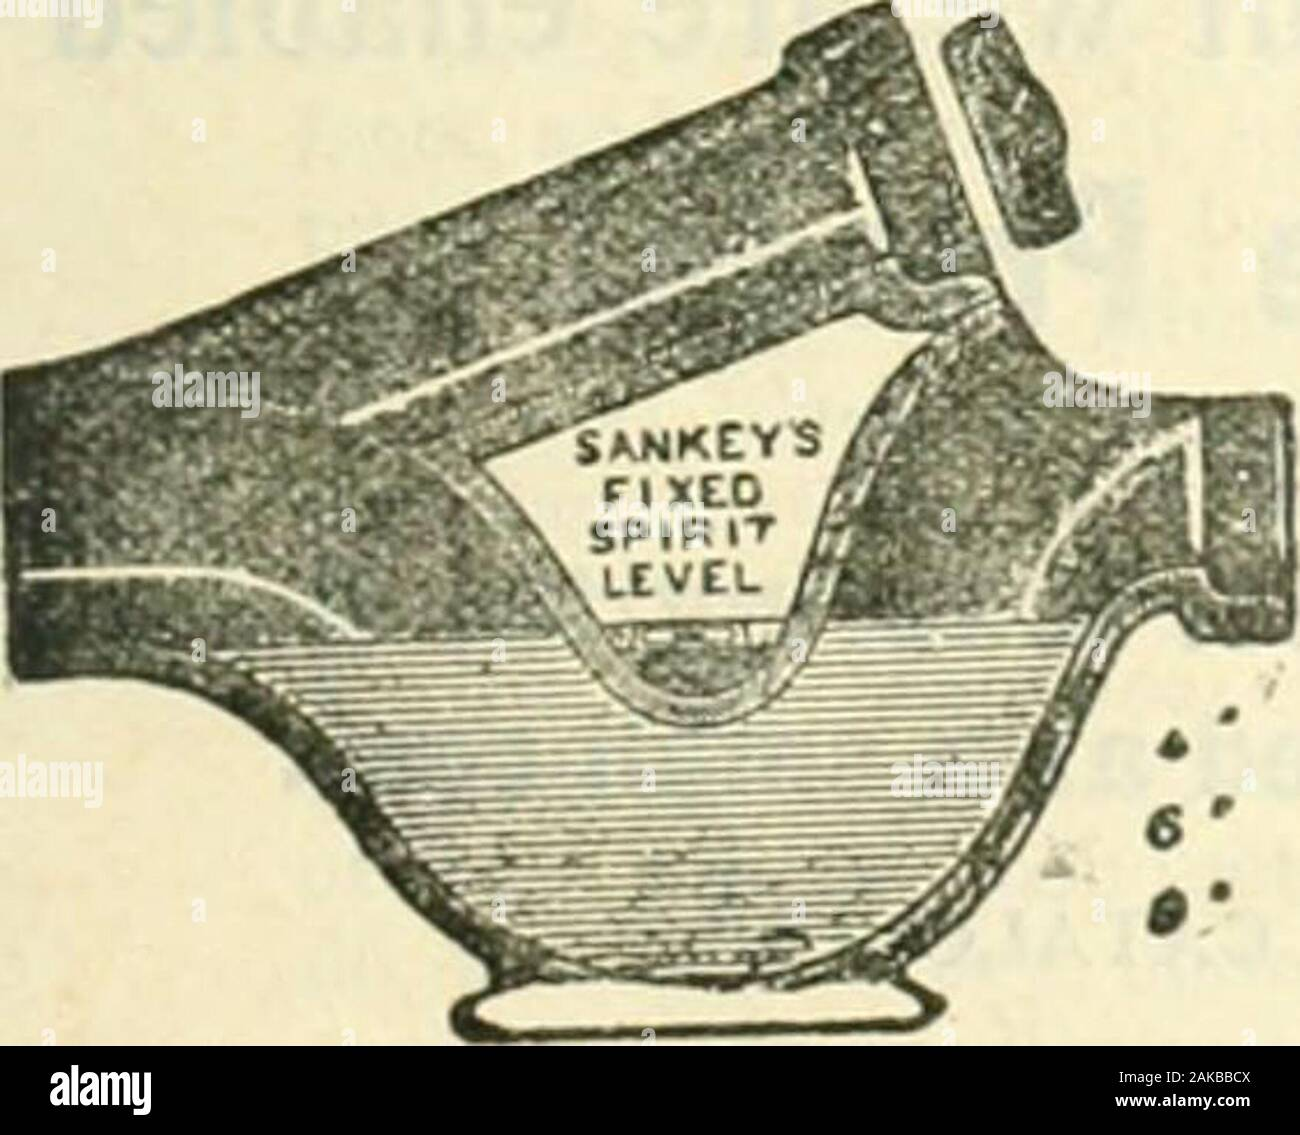 The Surveyor and municipal engineer . VENTILATINGGO. LTD. Specialists in VENTILATING AND WARMING. BLACKMAN TRADE MARK 63 FORE STREET, LONDON, E.G., and Branches.. Established 1840. Telephone No. 9B H» SANKEY & CO., Chief Office: Creek Wharf, Hammersmith, W. Agent for HASSALLS IMPROVED PATENT SAFETY PIPE JOINT. SANKEYS IMPROVED (DEEP) INTERCEPTING« GULLY, for all kinds of Drainage. Speoliil LIMES supplied for the Disposal of SEWERAGEHattur, also for Cas Purlfioatlon. Inctt on Apylwation. LONDON PLATE GLASSINSURANCE CO., Ltd. tJcad Office : 49 Queen Victoria 5t.. E.C. MODERATE RATES. PROMP. REPL Stock Photo